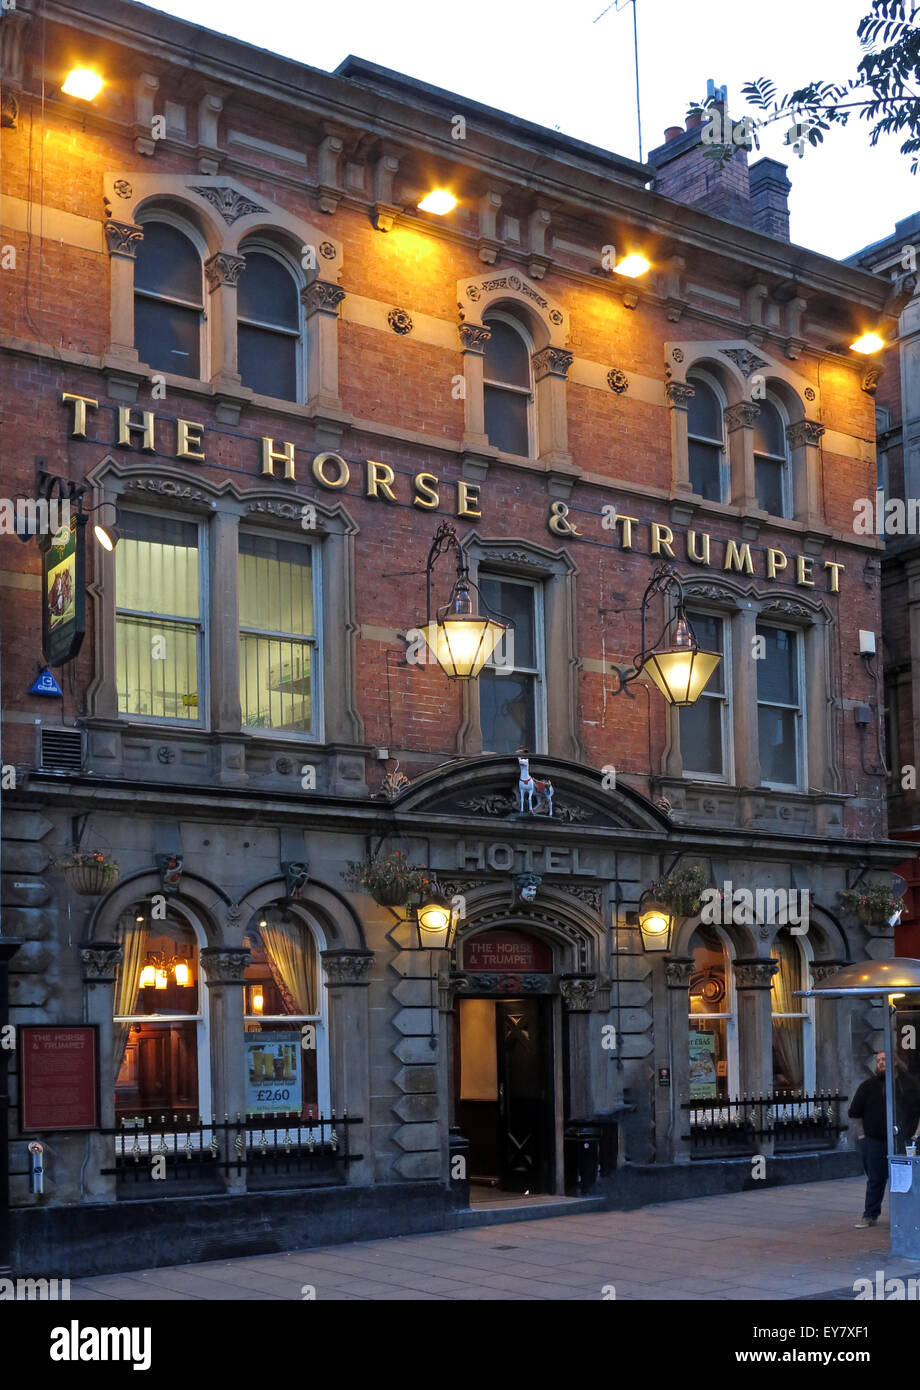 The Horse and Trumpet pub,Leeds at night, Yorkshire, England, UK Stock Photo